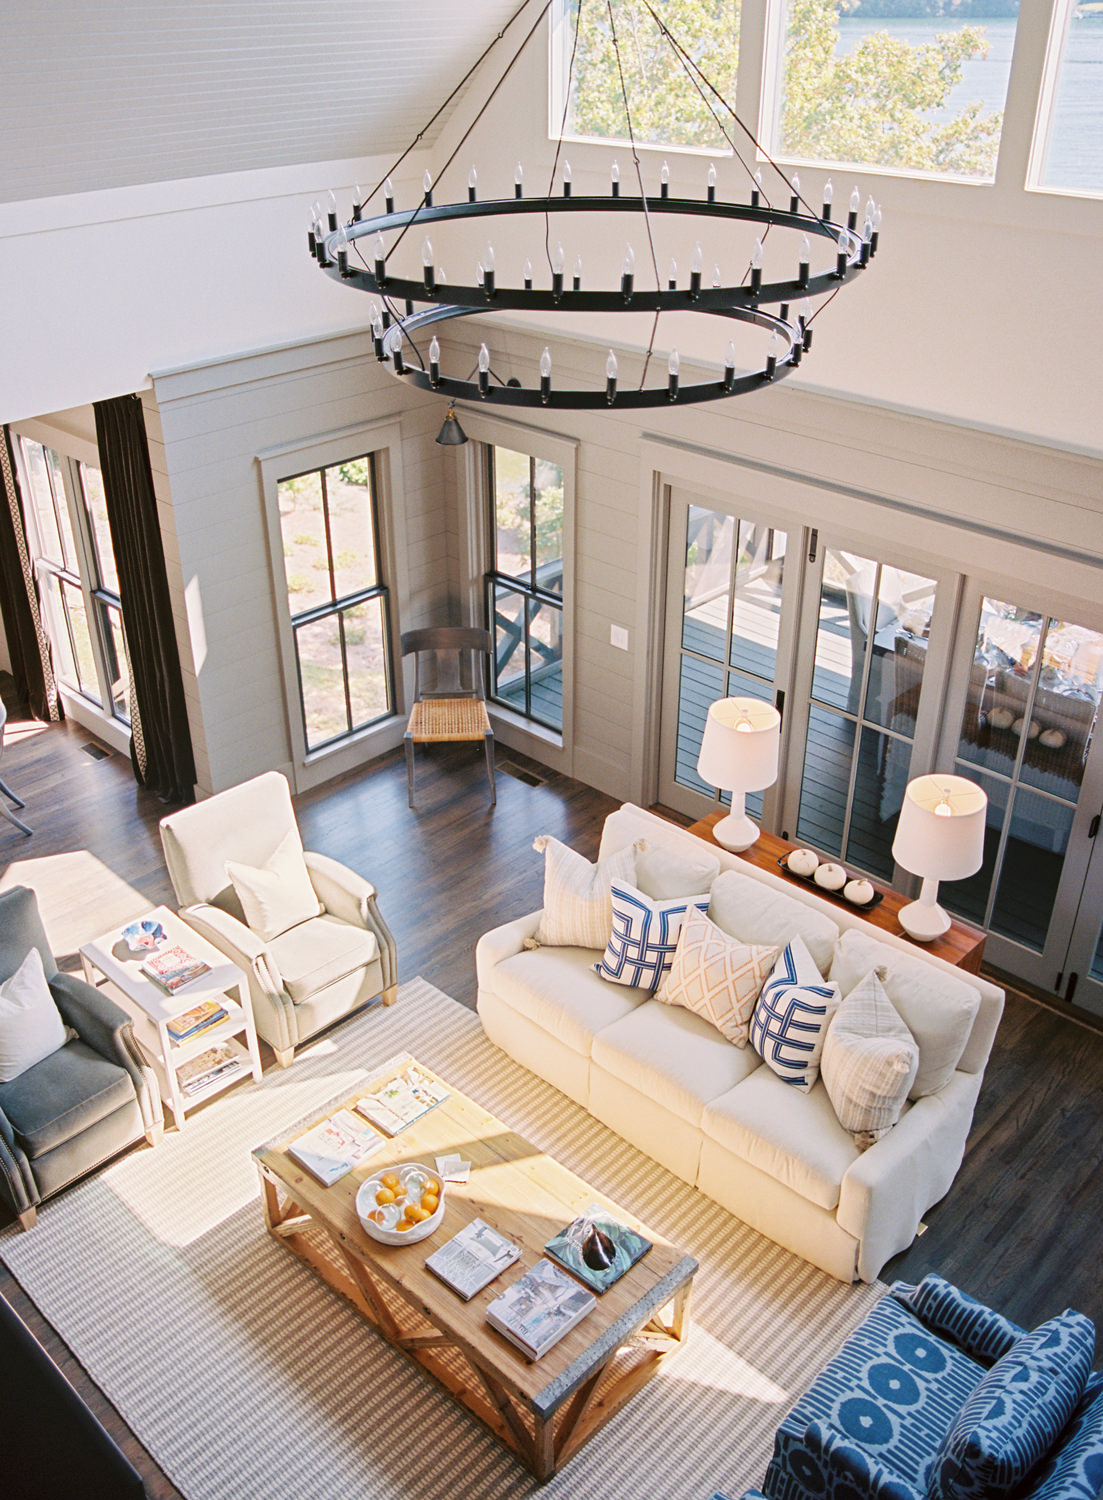 cottrell_photography_interiors-007